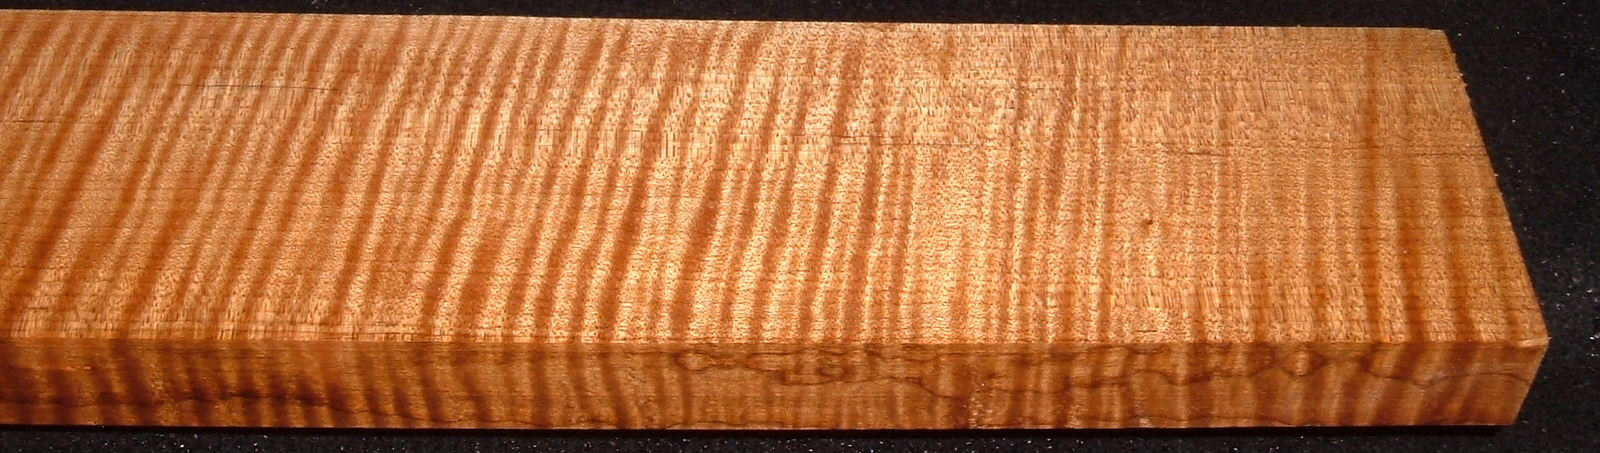 QRM2008-216, 1x3-1/8x44, Quartersawn Roasted Curly Maple